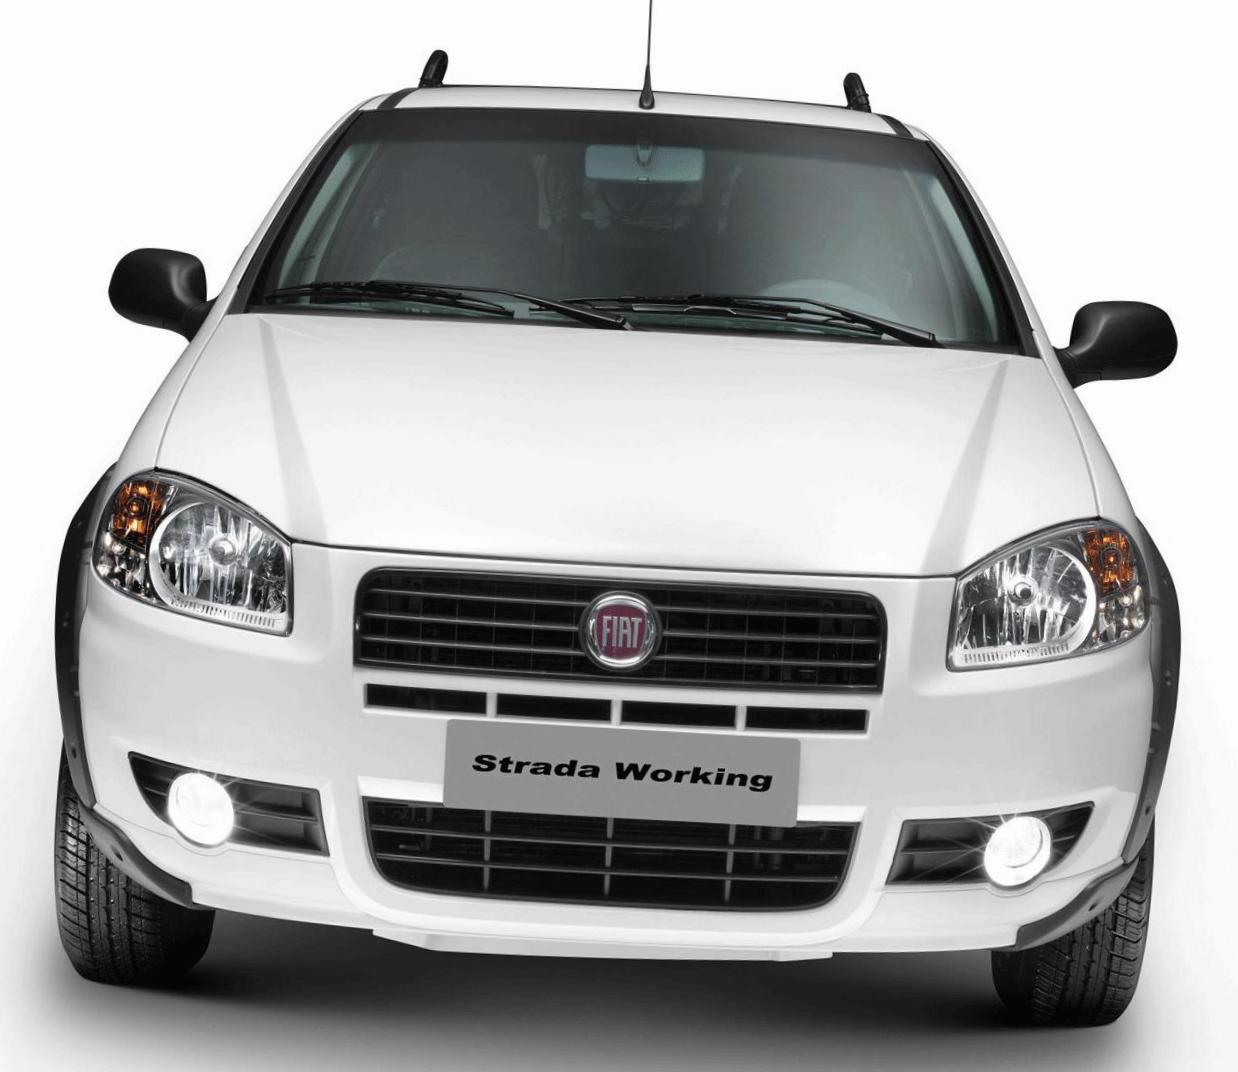 Fiat Strada Working Specifications 2014